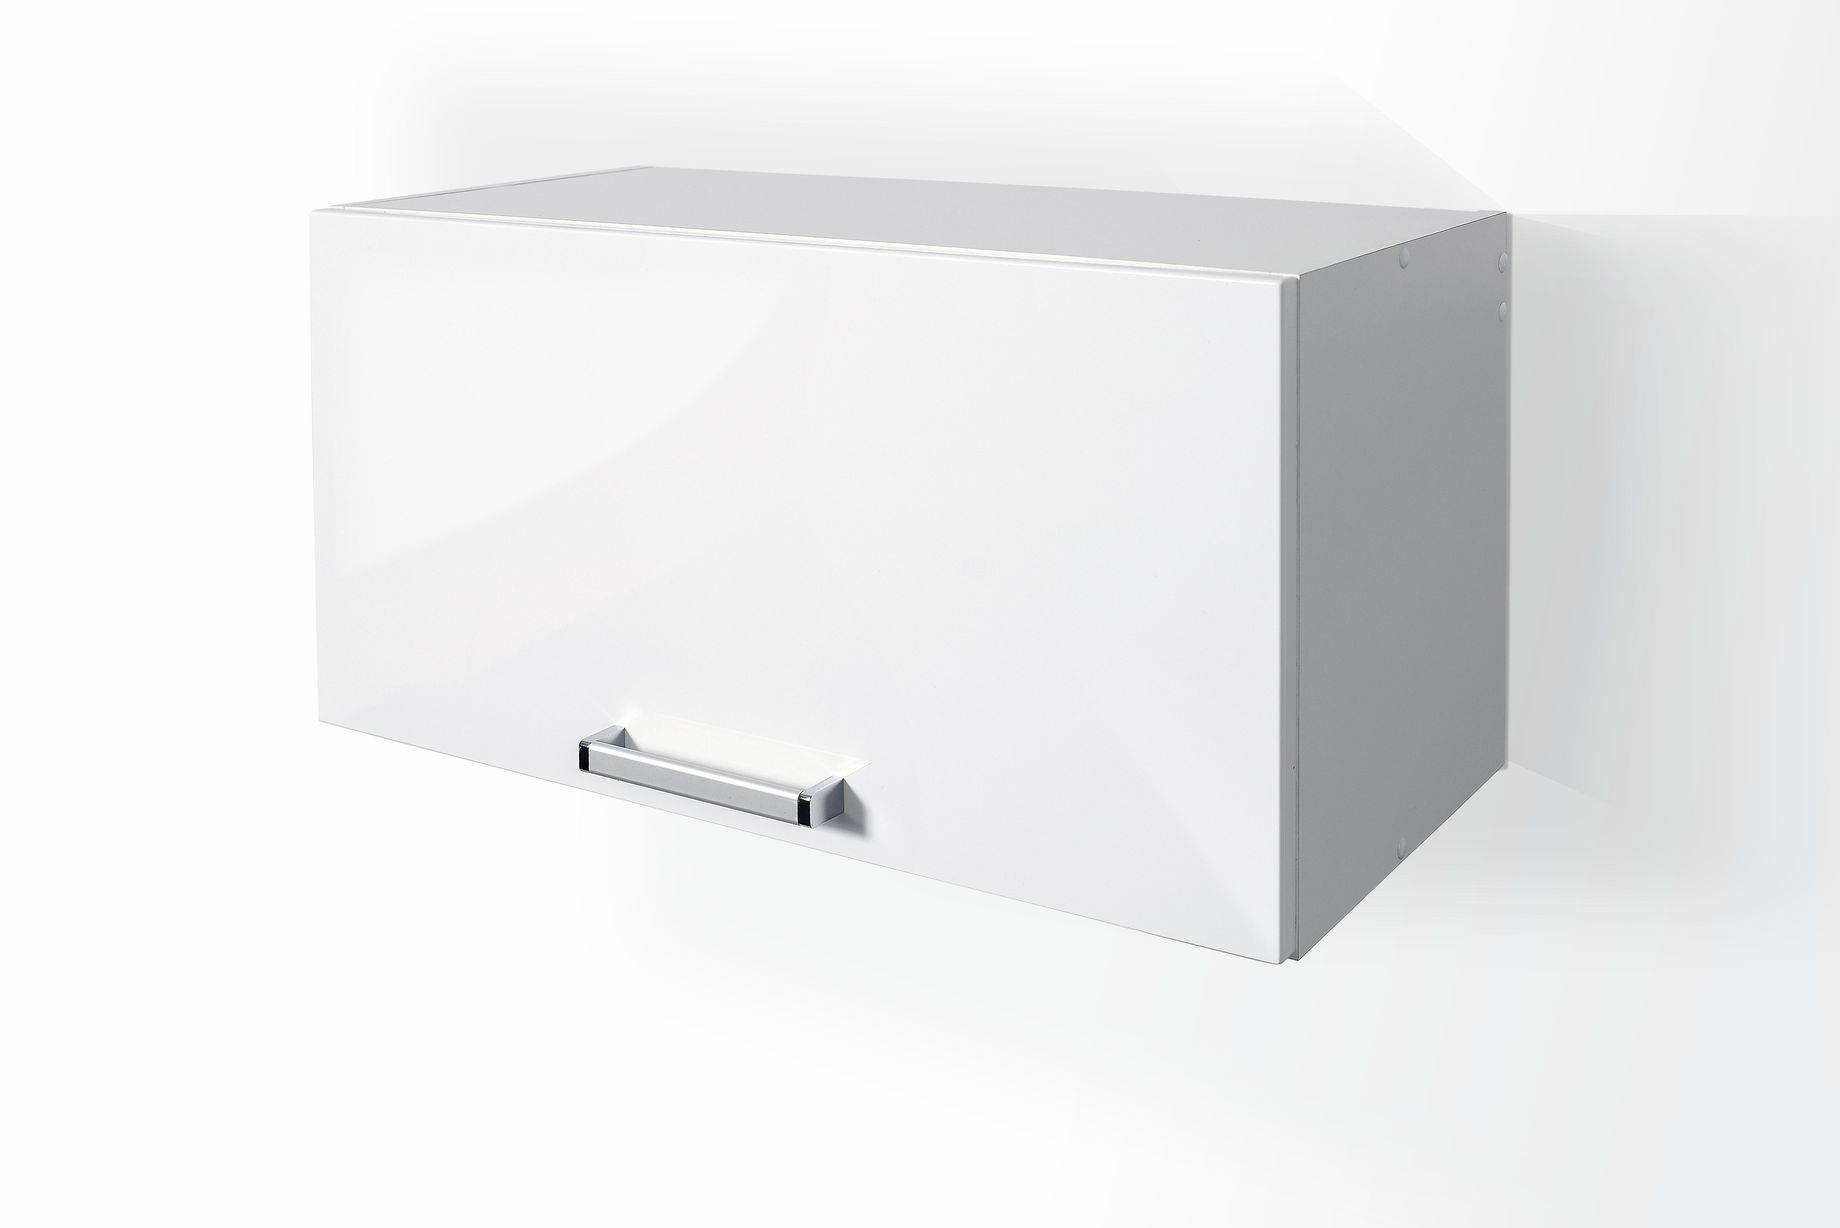 High Gloss White Wall cabinet W80G1 for Kitchen